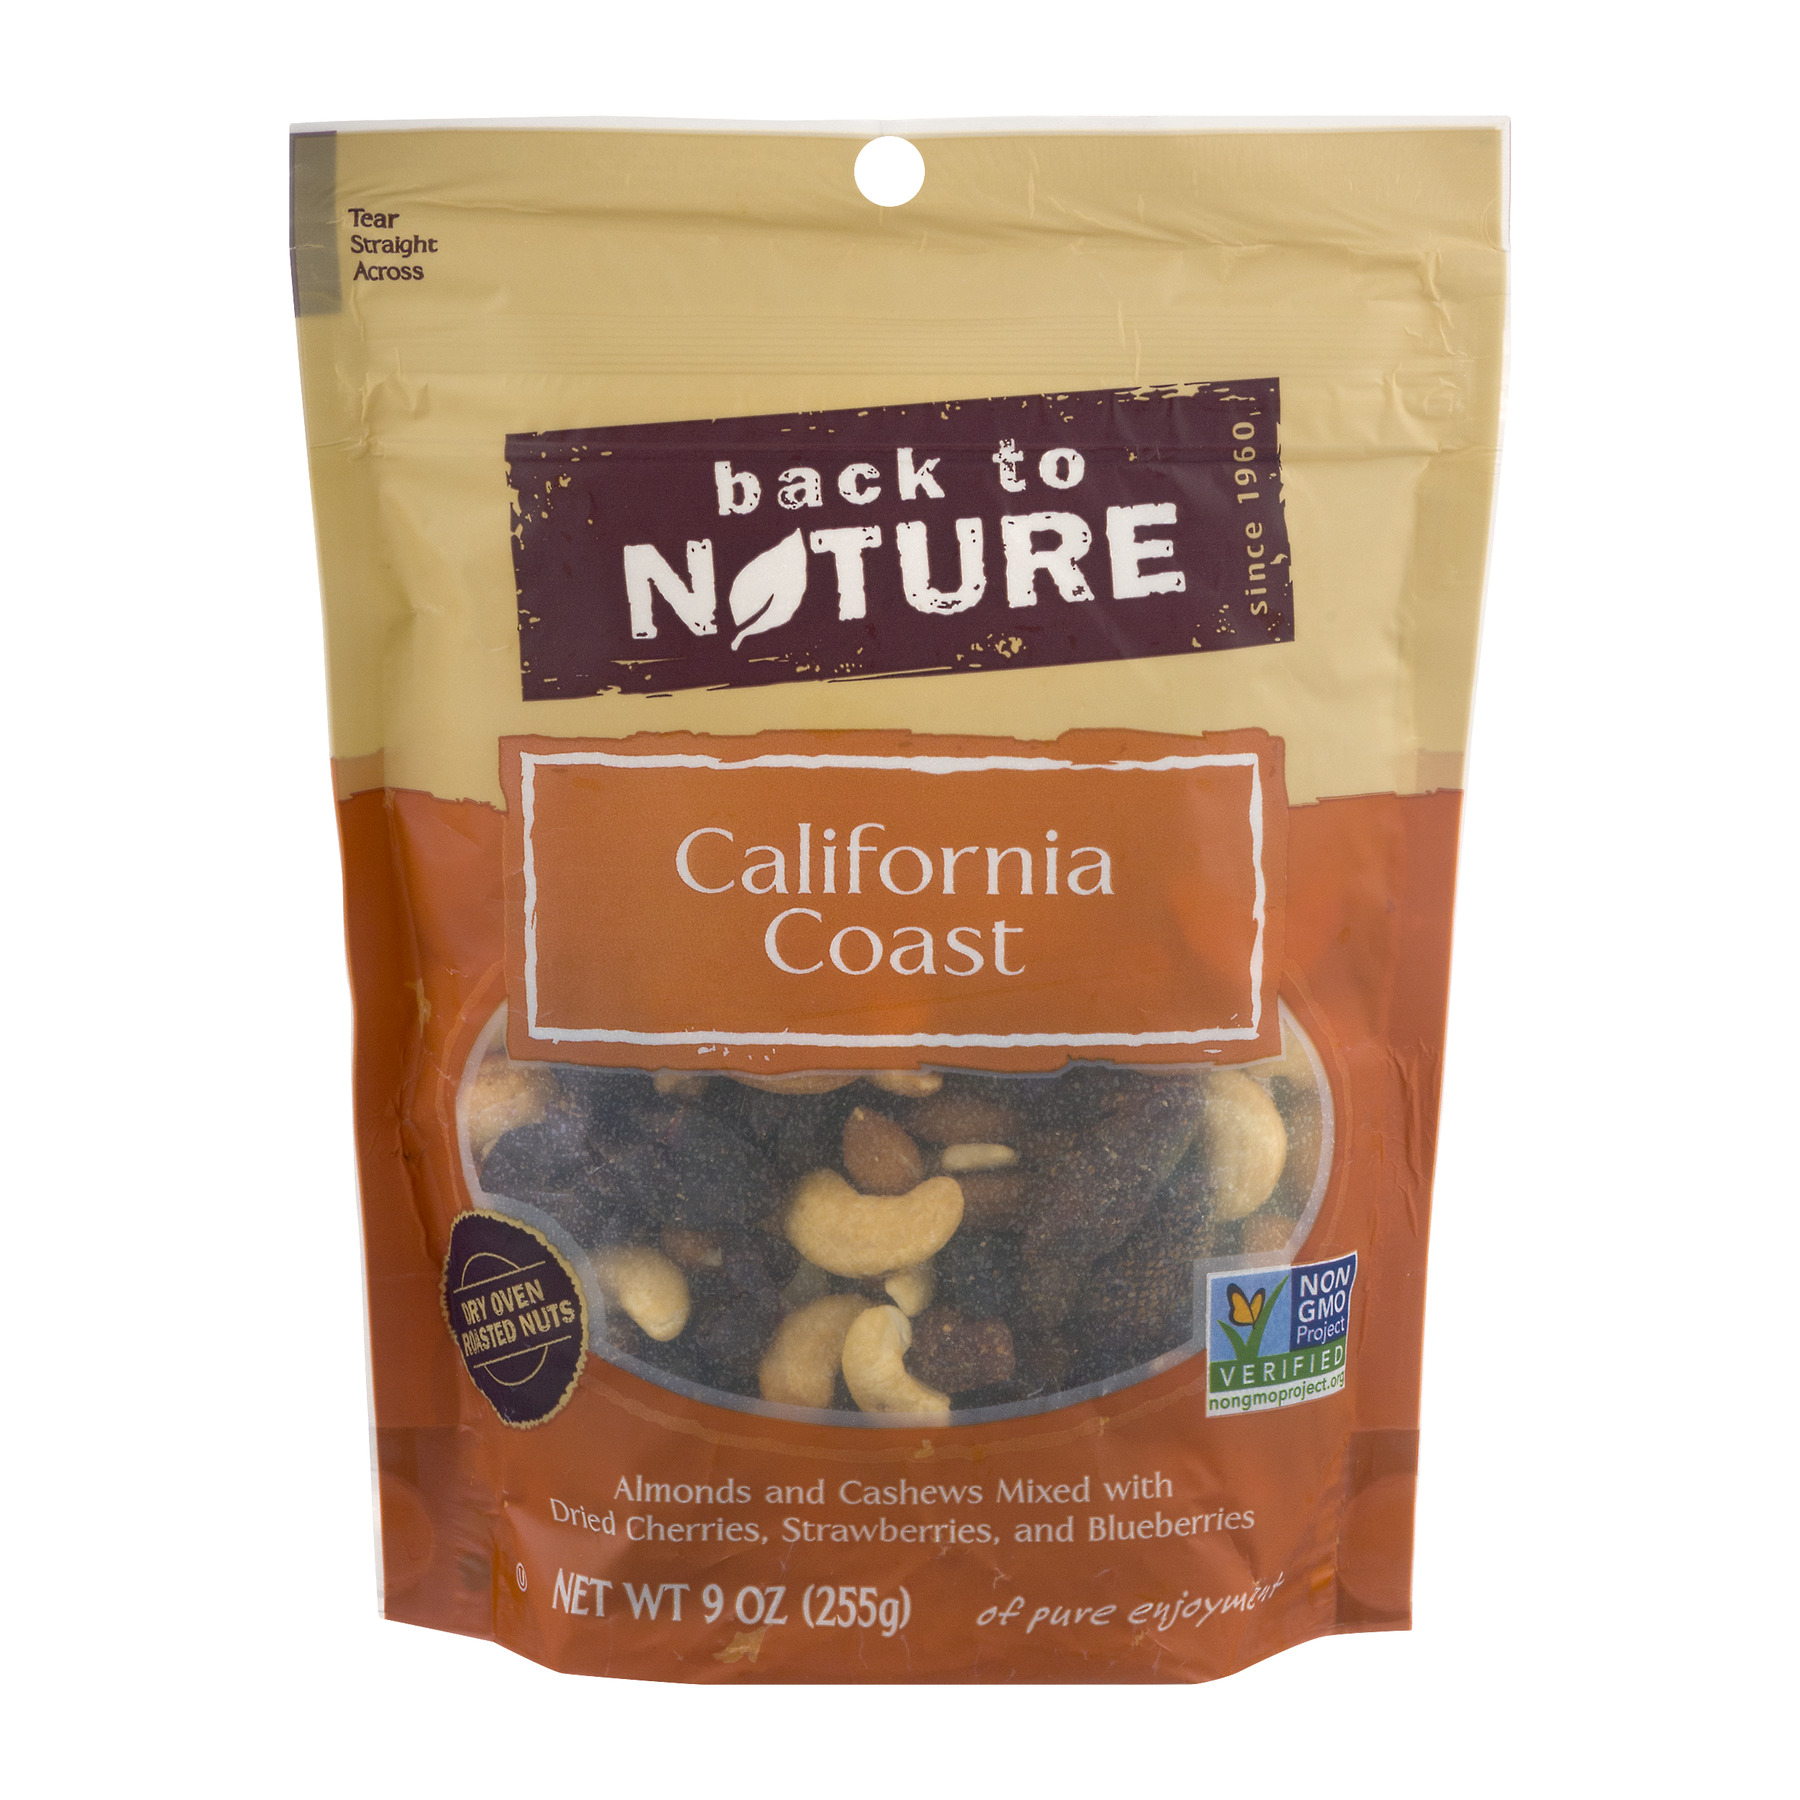 Back to Nature California Coast Dry Oven Roasted Nuts, 9.0 OZ